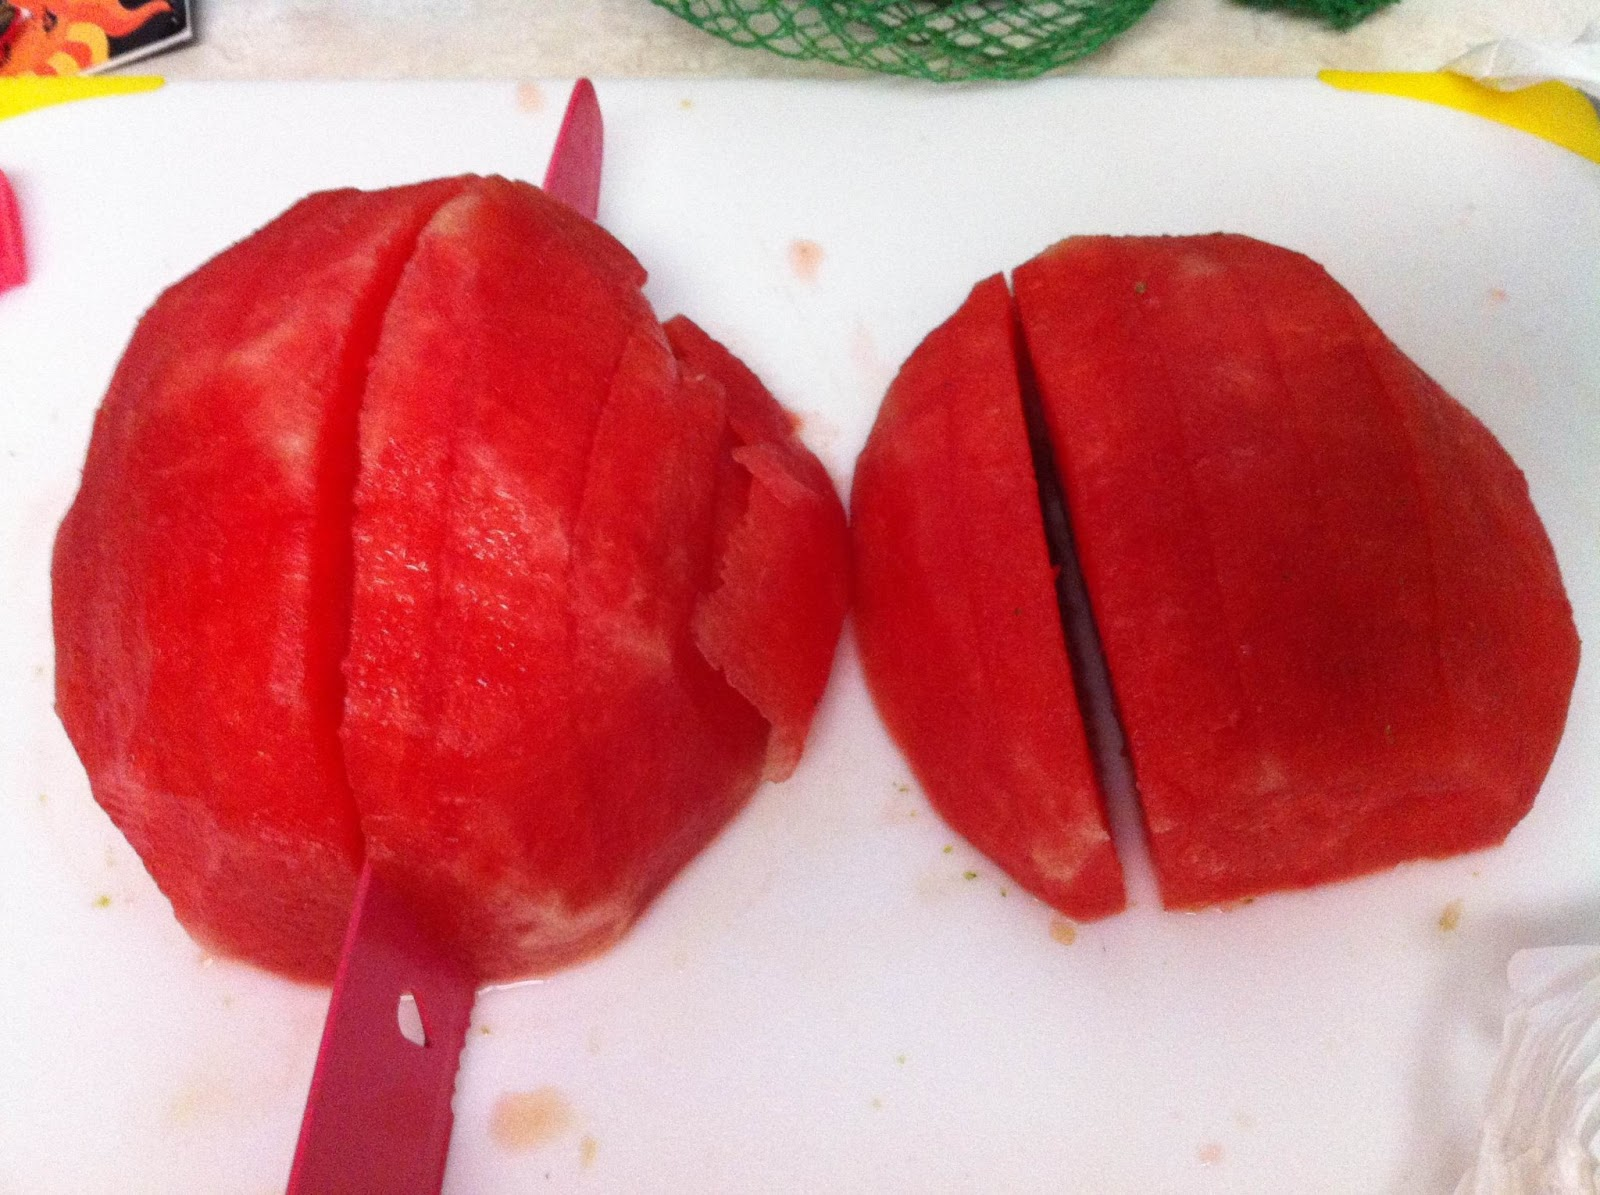 how to cut up a watermelon into wedges